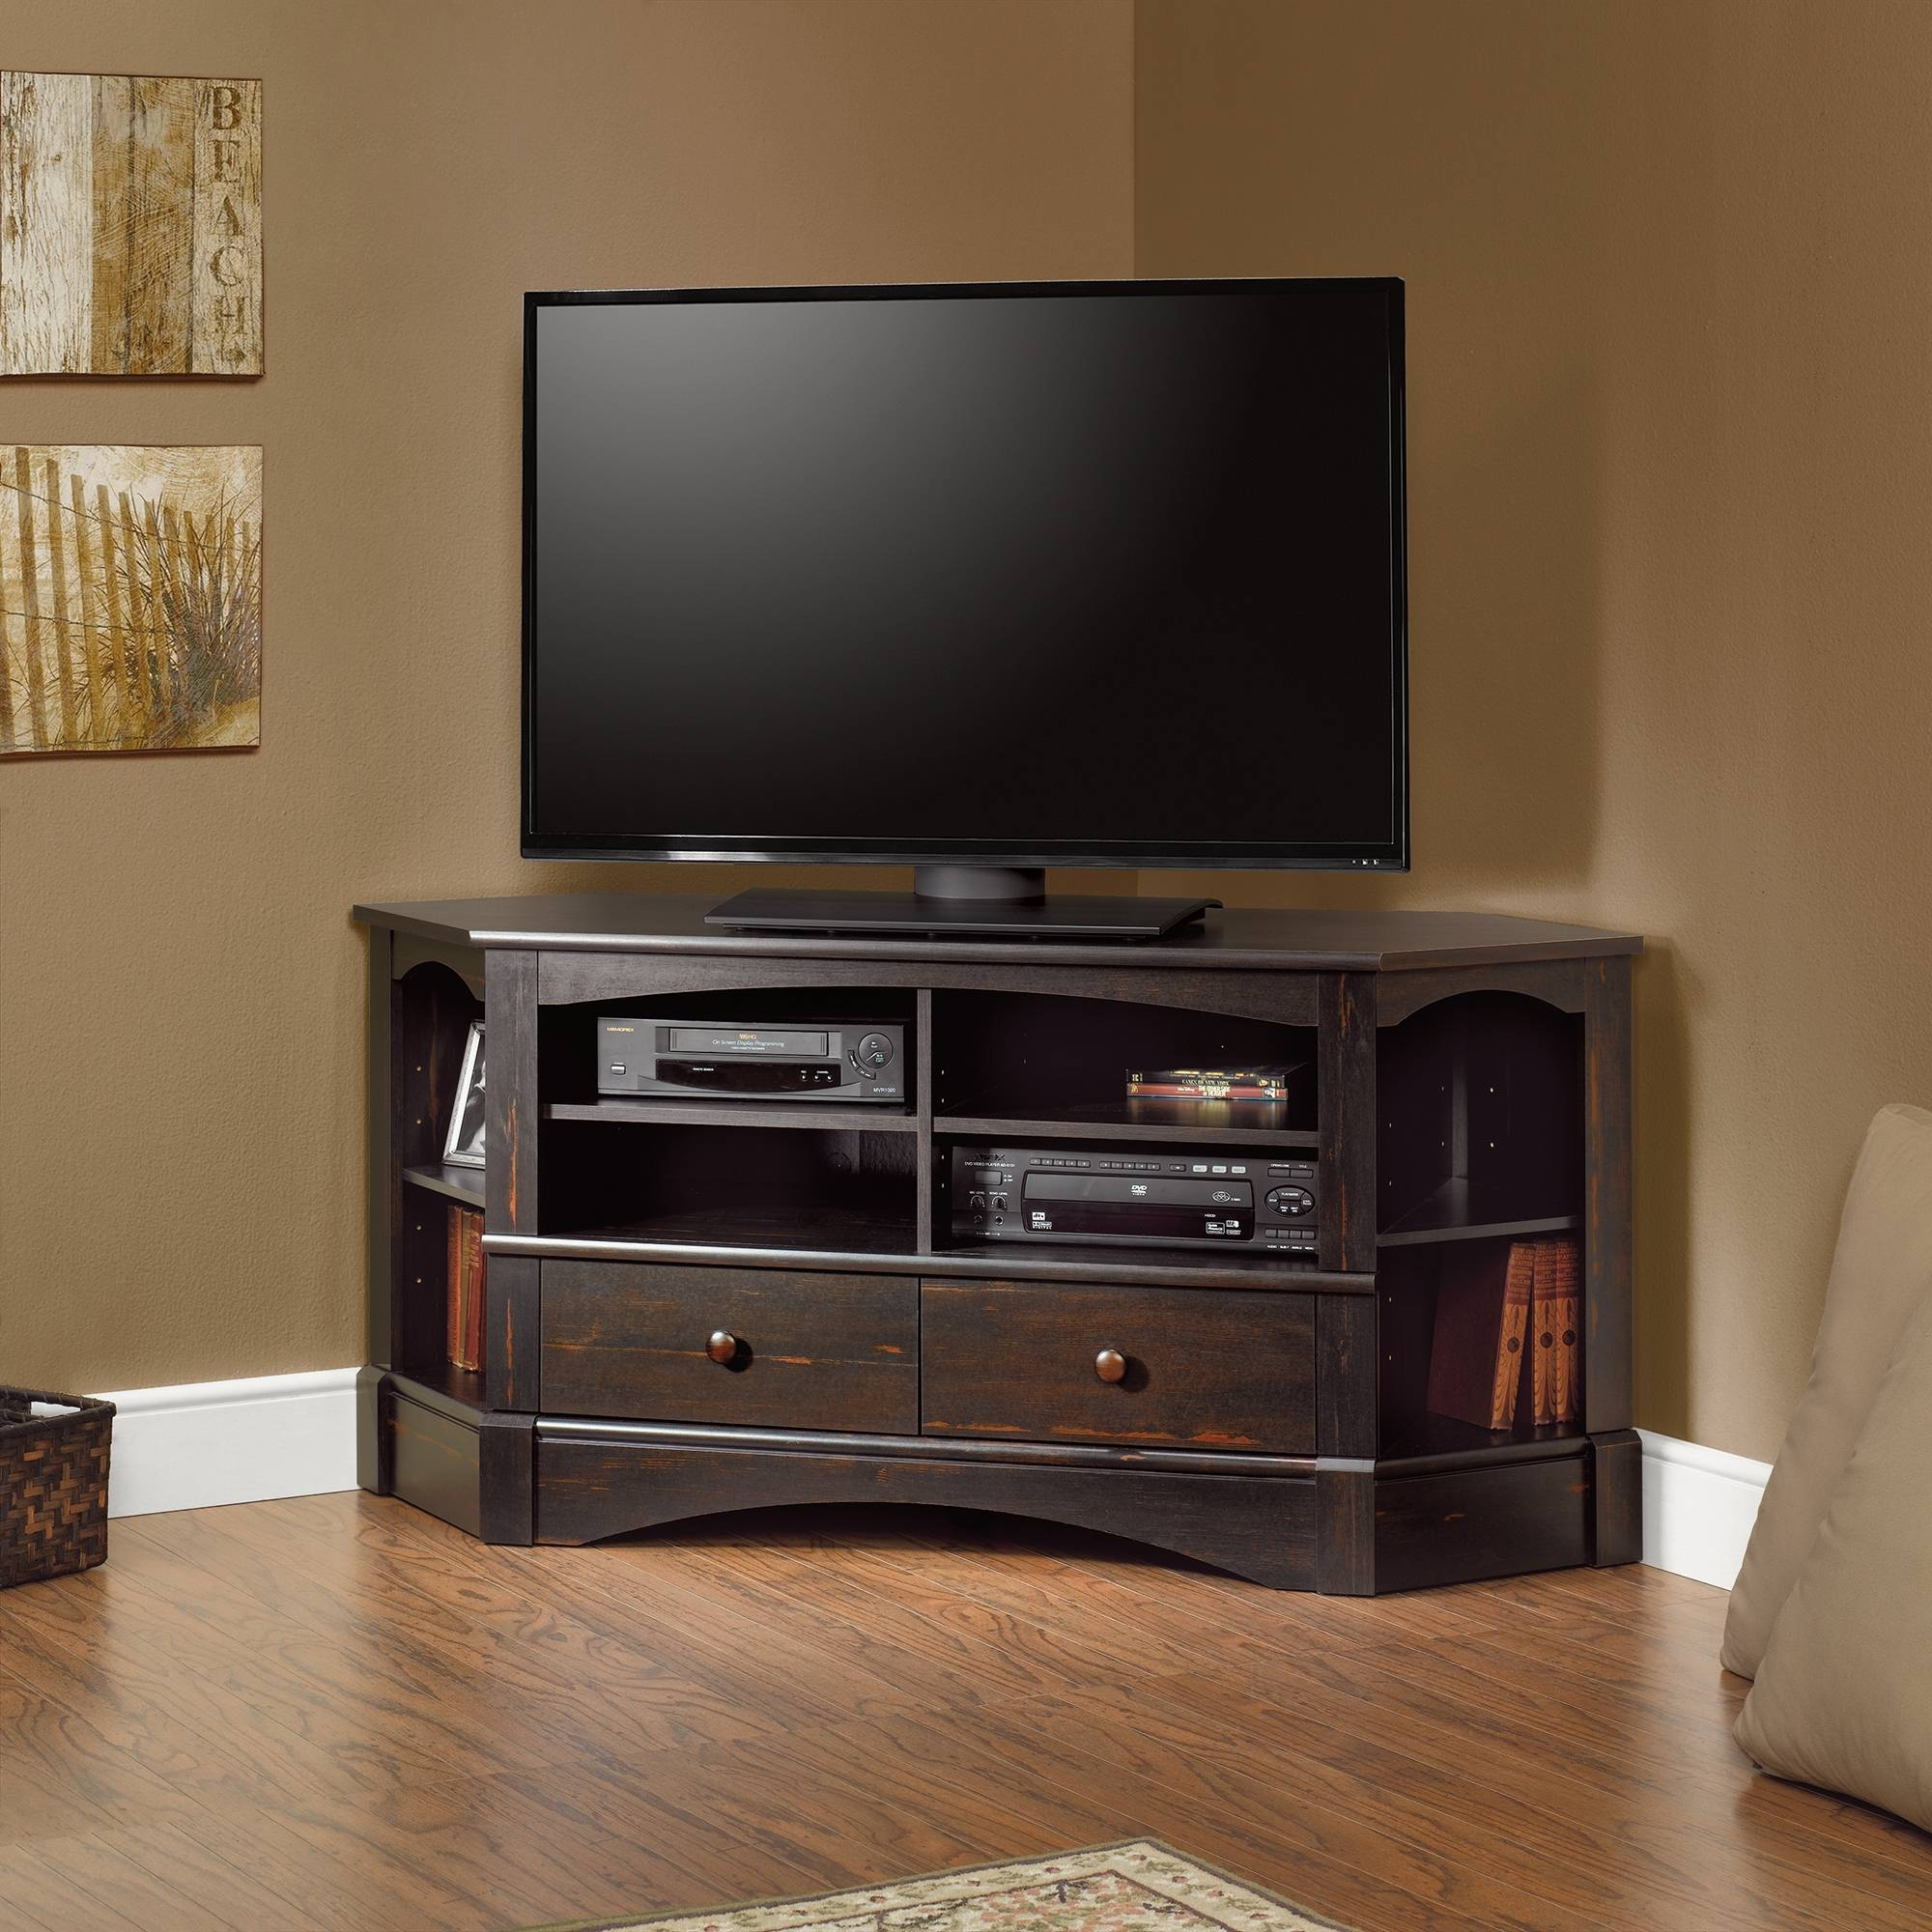 Harbor View | Corner Entertainment Credenza | 402902 | Sauder pertaining to Tv Stands For Corners (Image 7 of 15)